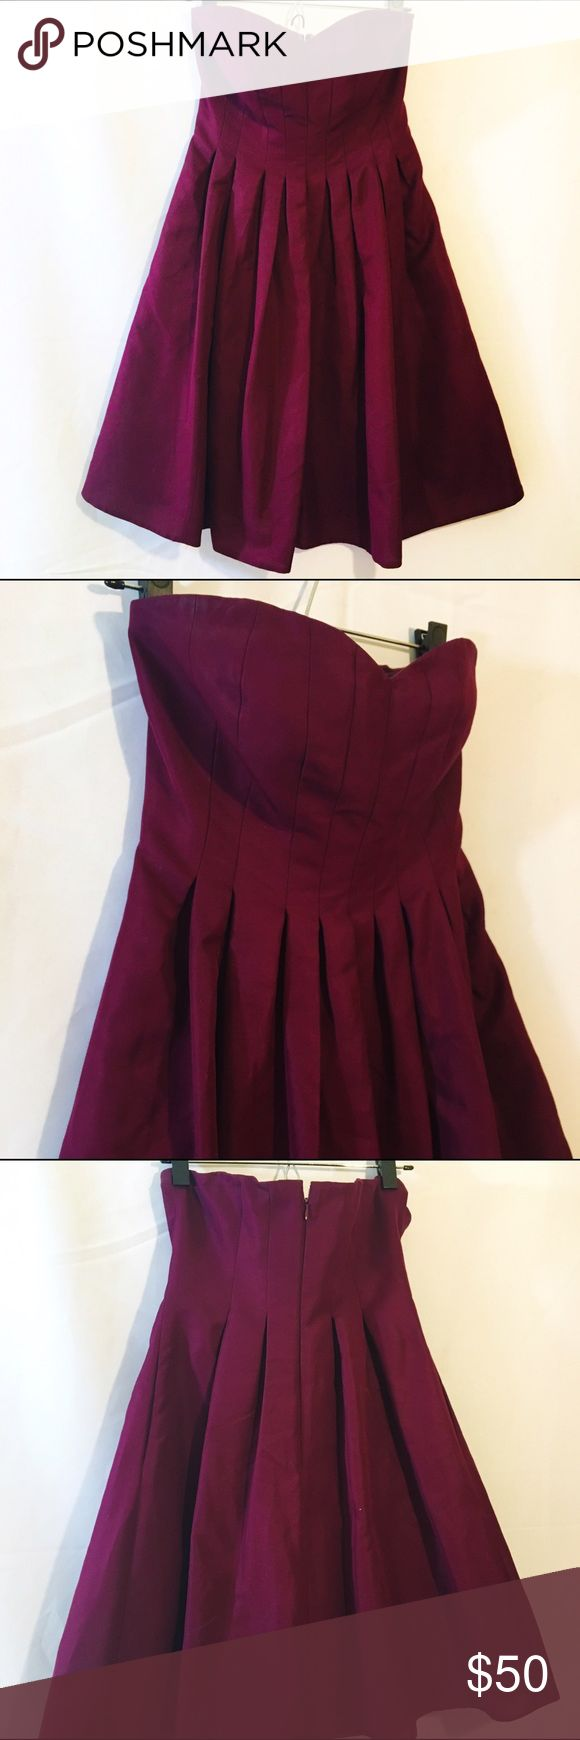 J. CREW burgundy strapless flared cocktail dress Super cute cocktail dress burgundy purple with structured bust. Like new condition. J. Crew Dresses